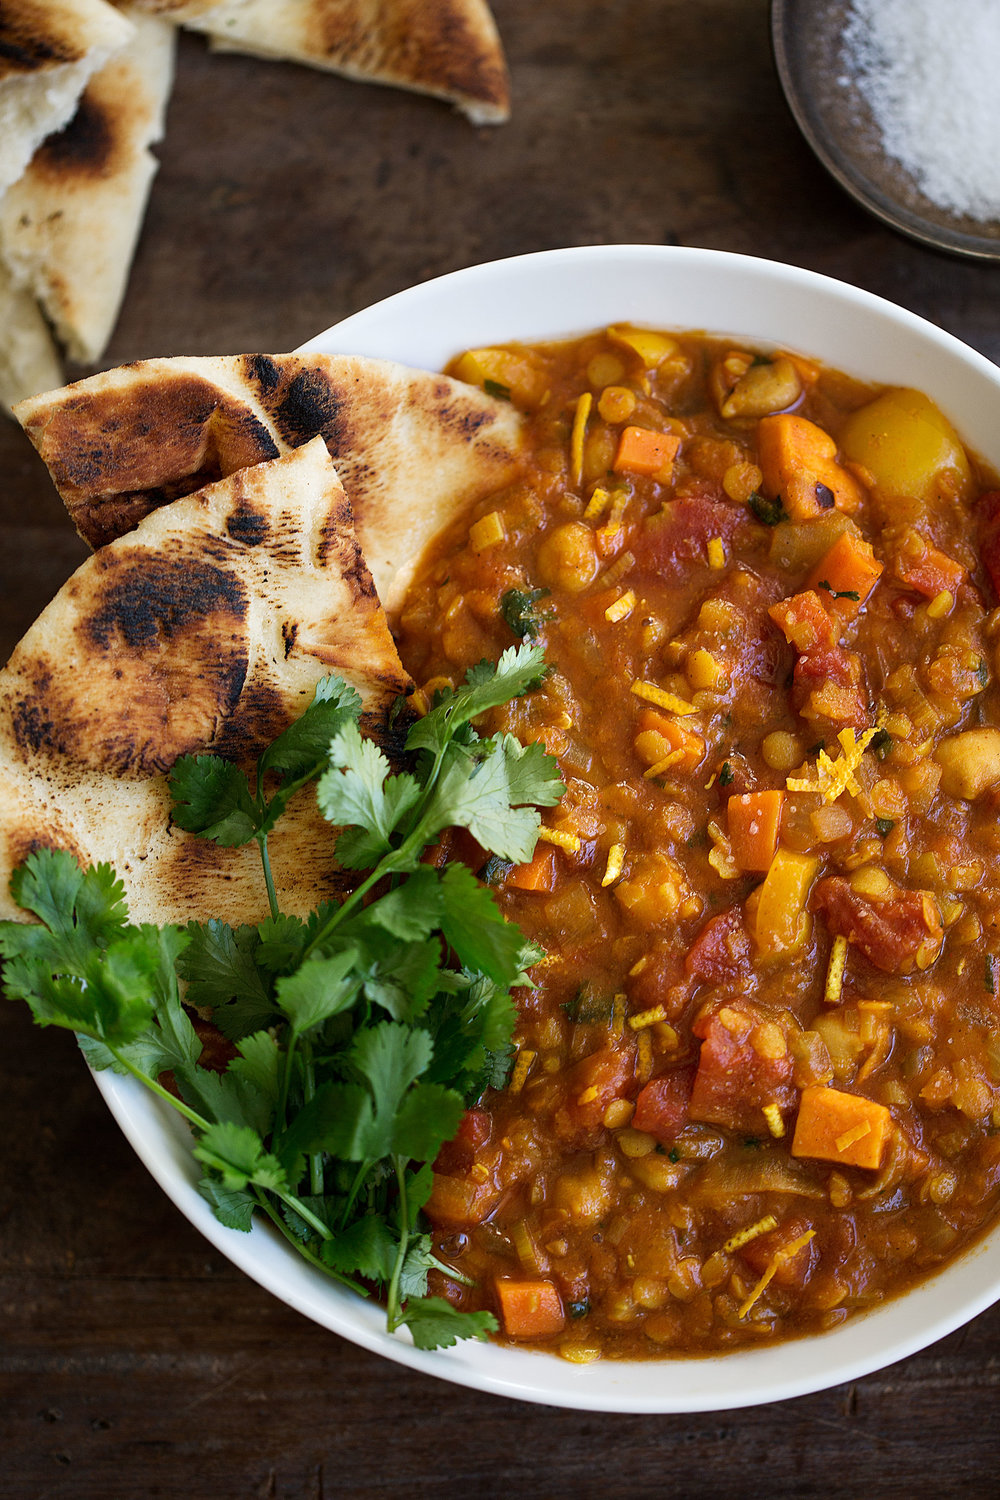 moroccan vegetable stew with lentils and chickpeas